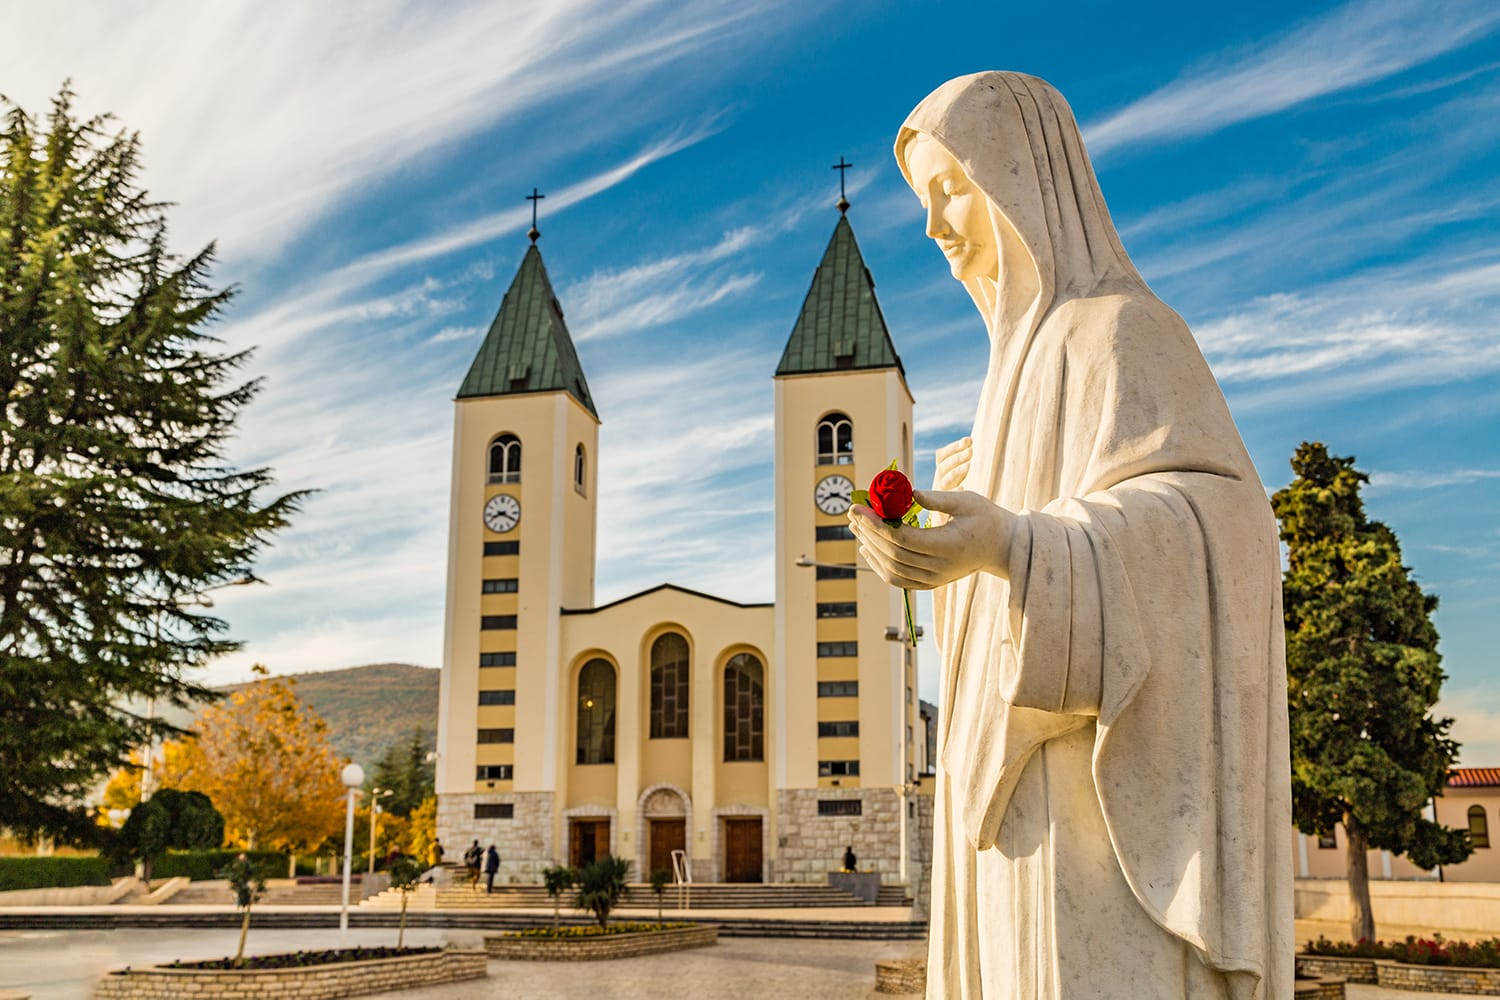 statue of the Blessed Virgin Mary holding a red rose while Saint James Church in Medjugorje, Bosnia & Herzegovina